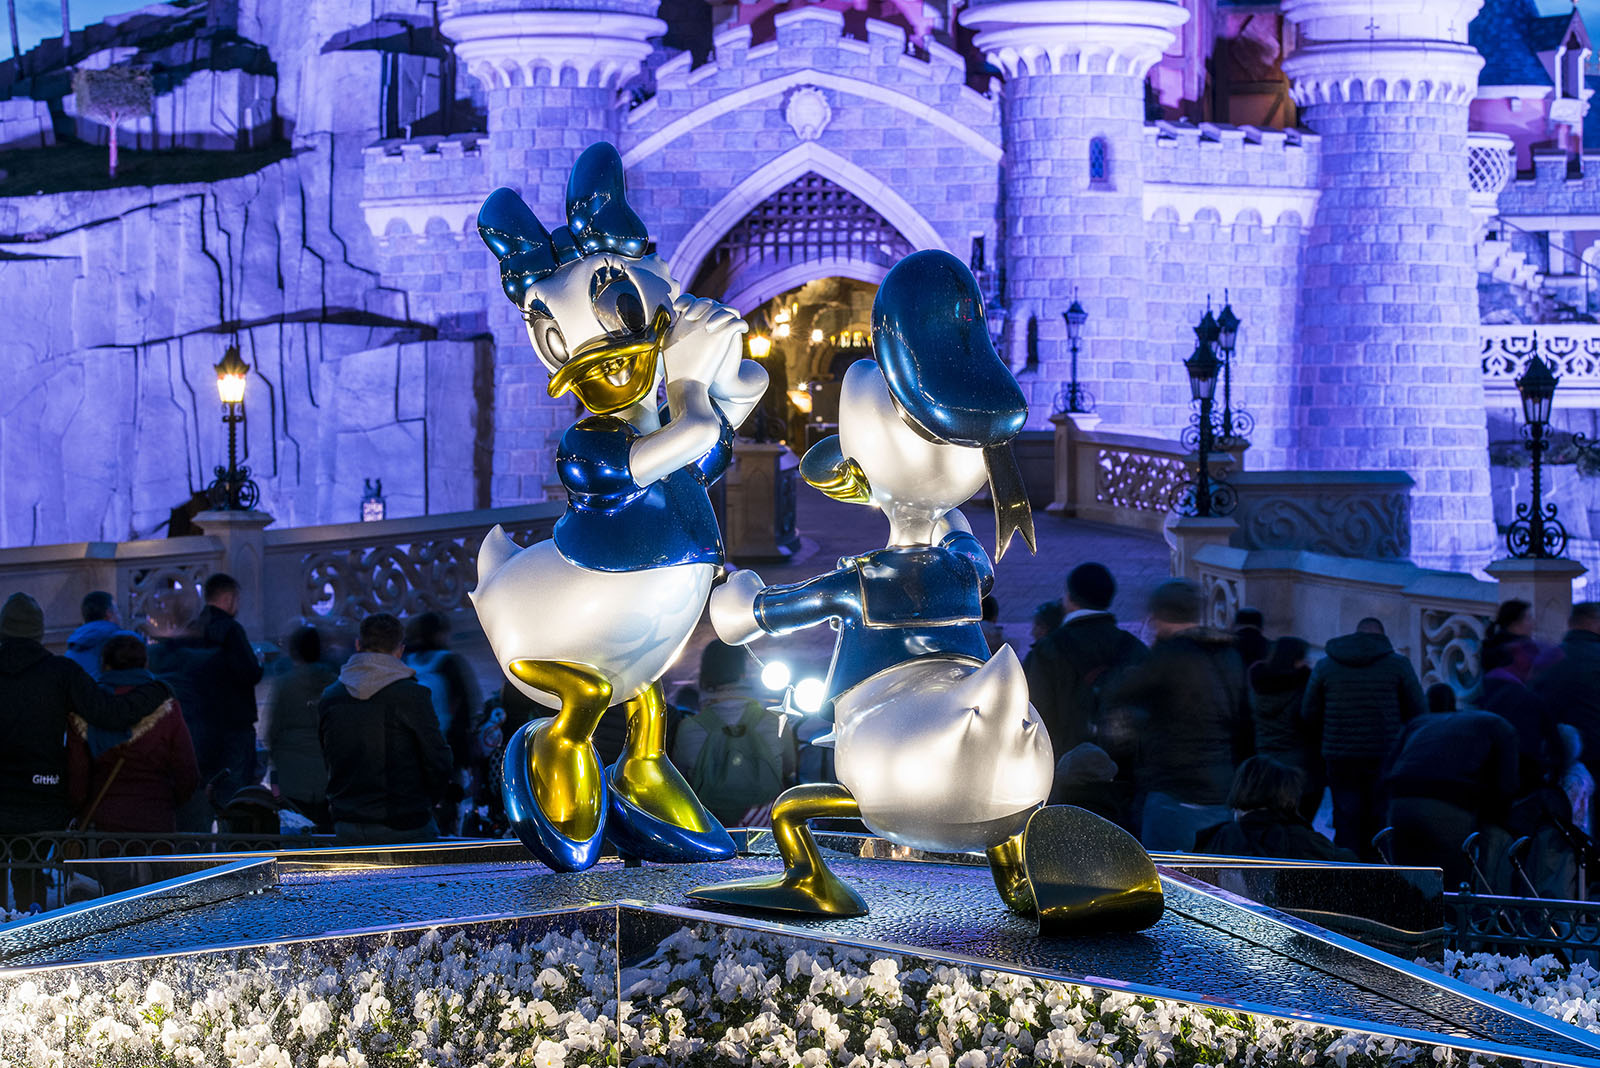 Central Plaza statues - Disneyland Paris 25th anniversary